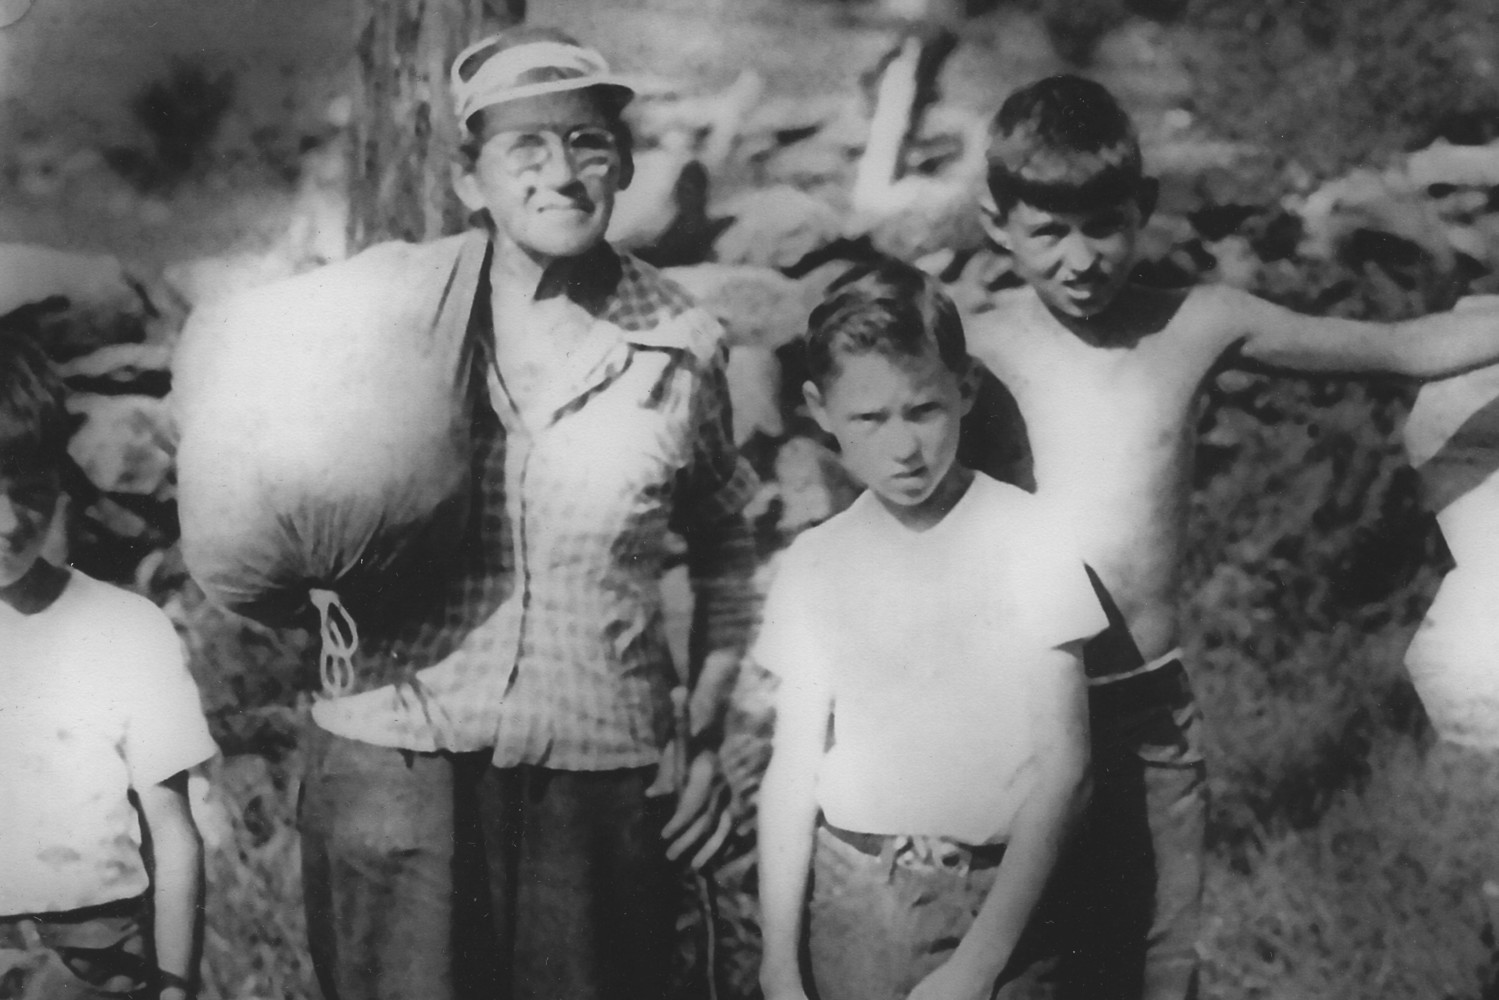 Emma's hike captured the attention of many she came across in her travels. I found this photo of Emma on  longwoodgardens.org  which shows Emma with Peter Thompson and his brothers in Orford, NH as she passed through on her first thru-hike in 1957.